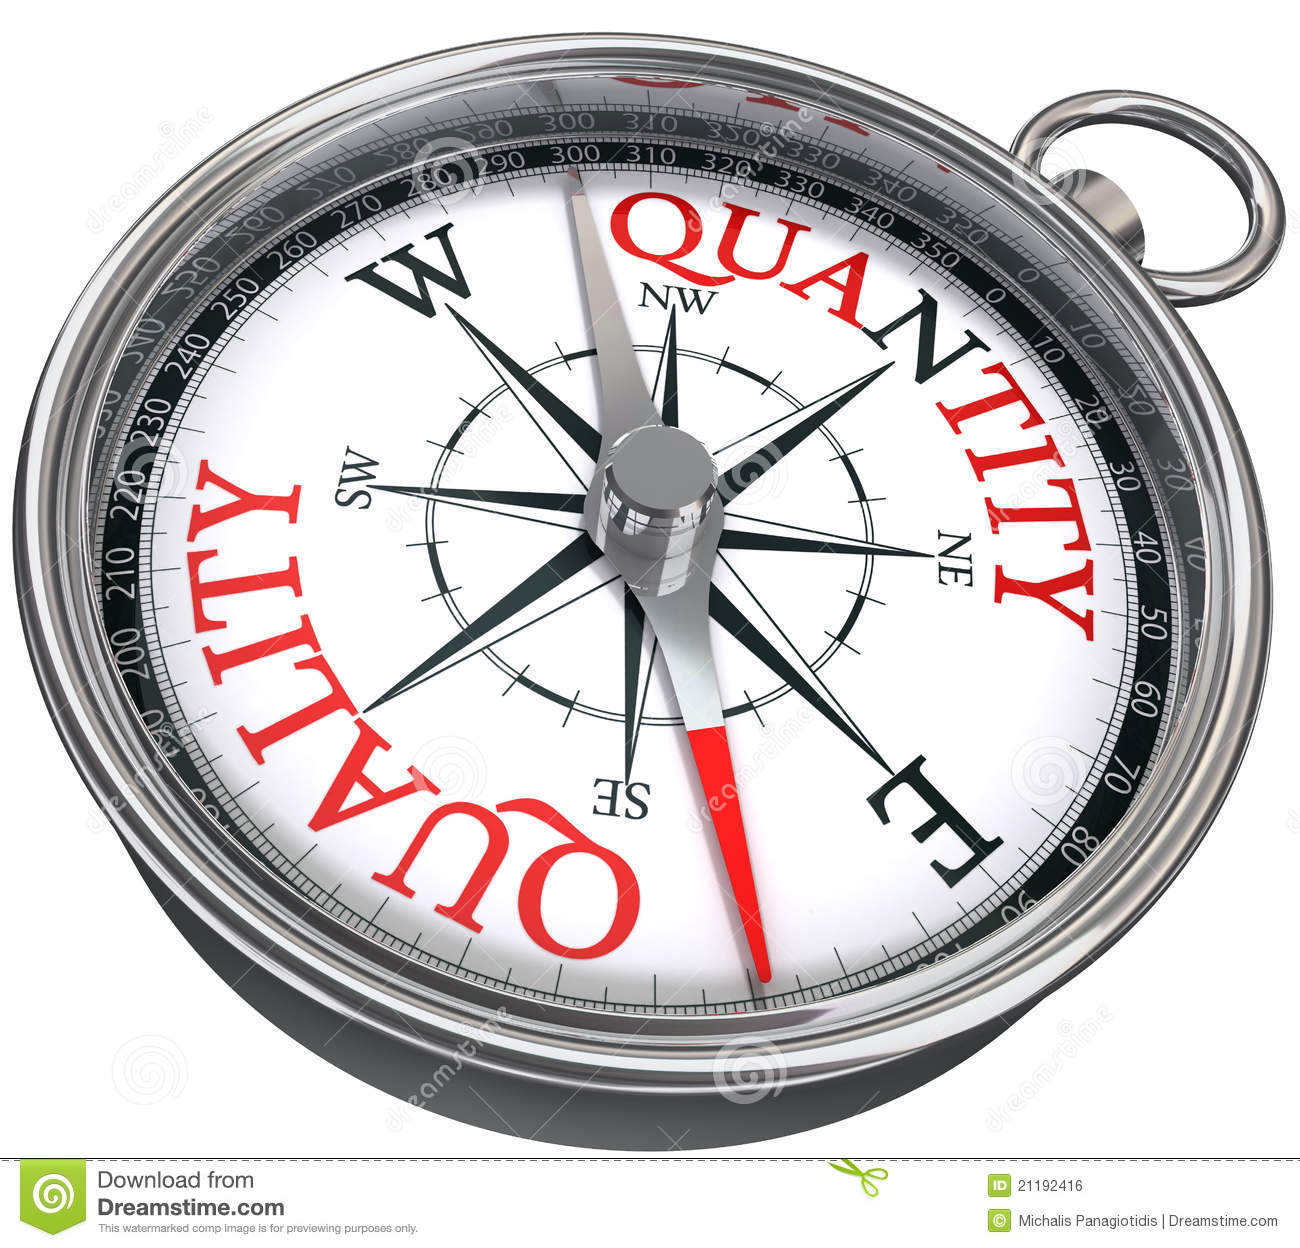 essay on quality of time vs quantity of time Quality, not quantity, they insist, is what the sat essay is all about  two graders  will read your essay and score it from 1 to 6  you may be worrying that you can 't fill up the essay pages in such a short amount of time.